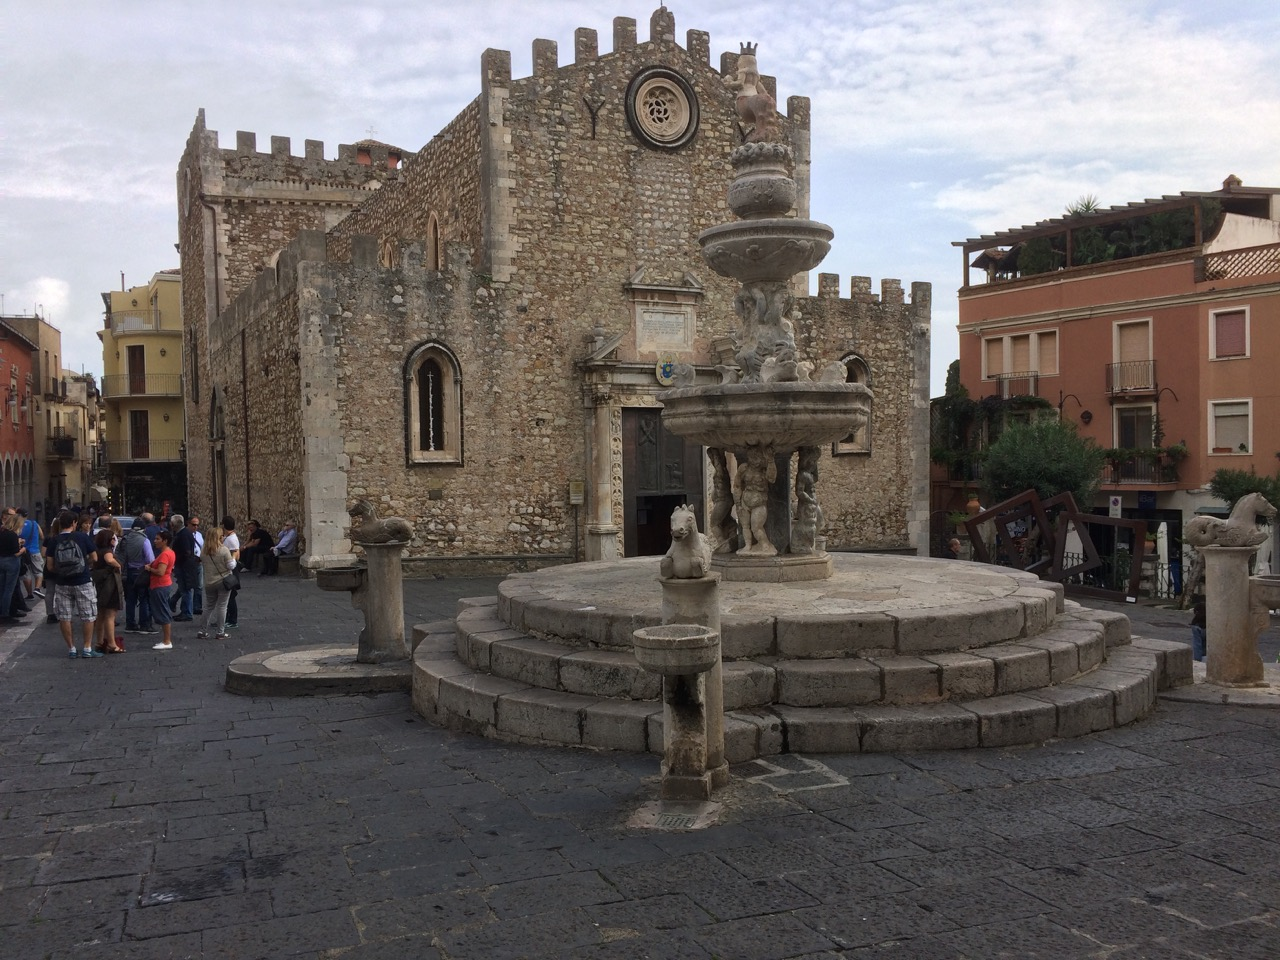 Piazza del Duomo with 13th century Cathedral and the Fountain